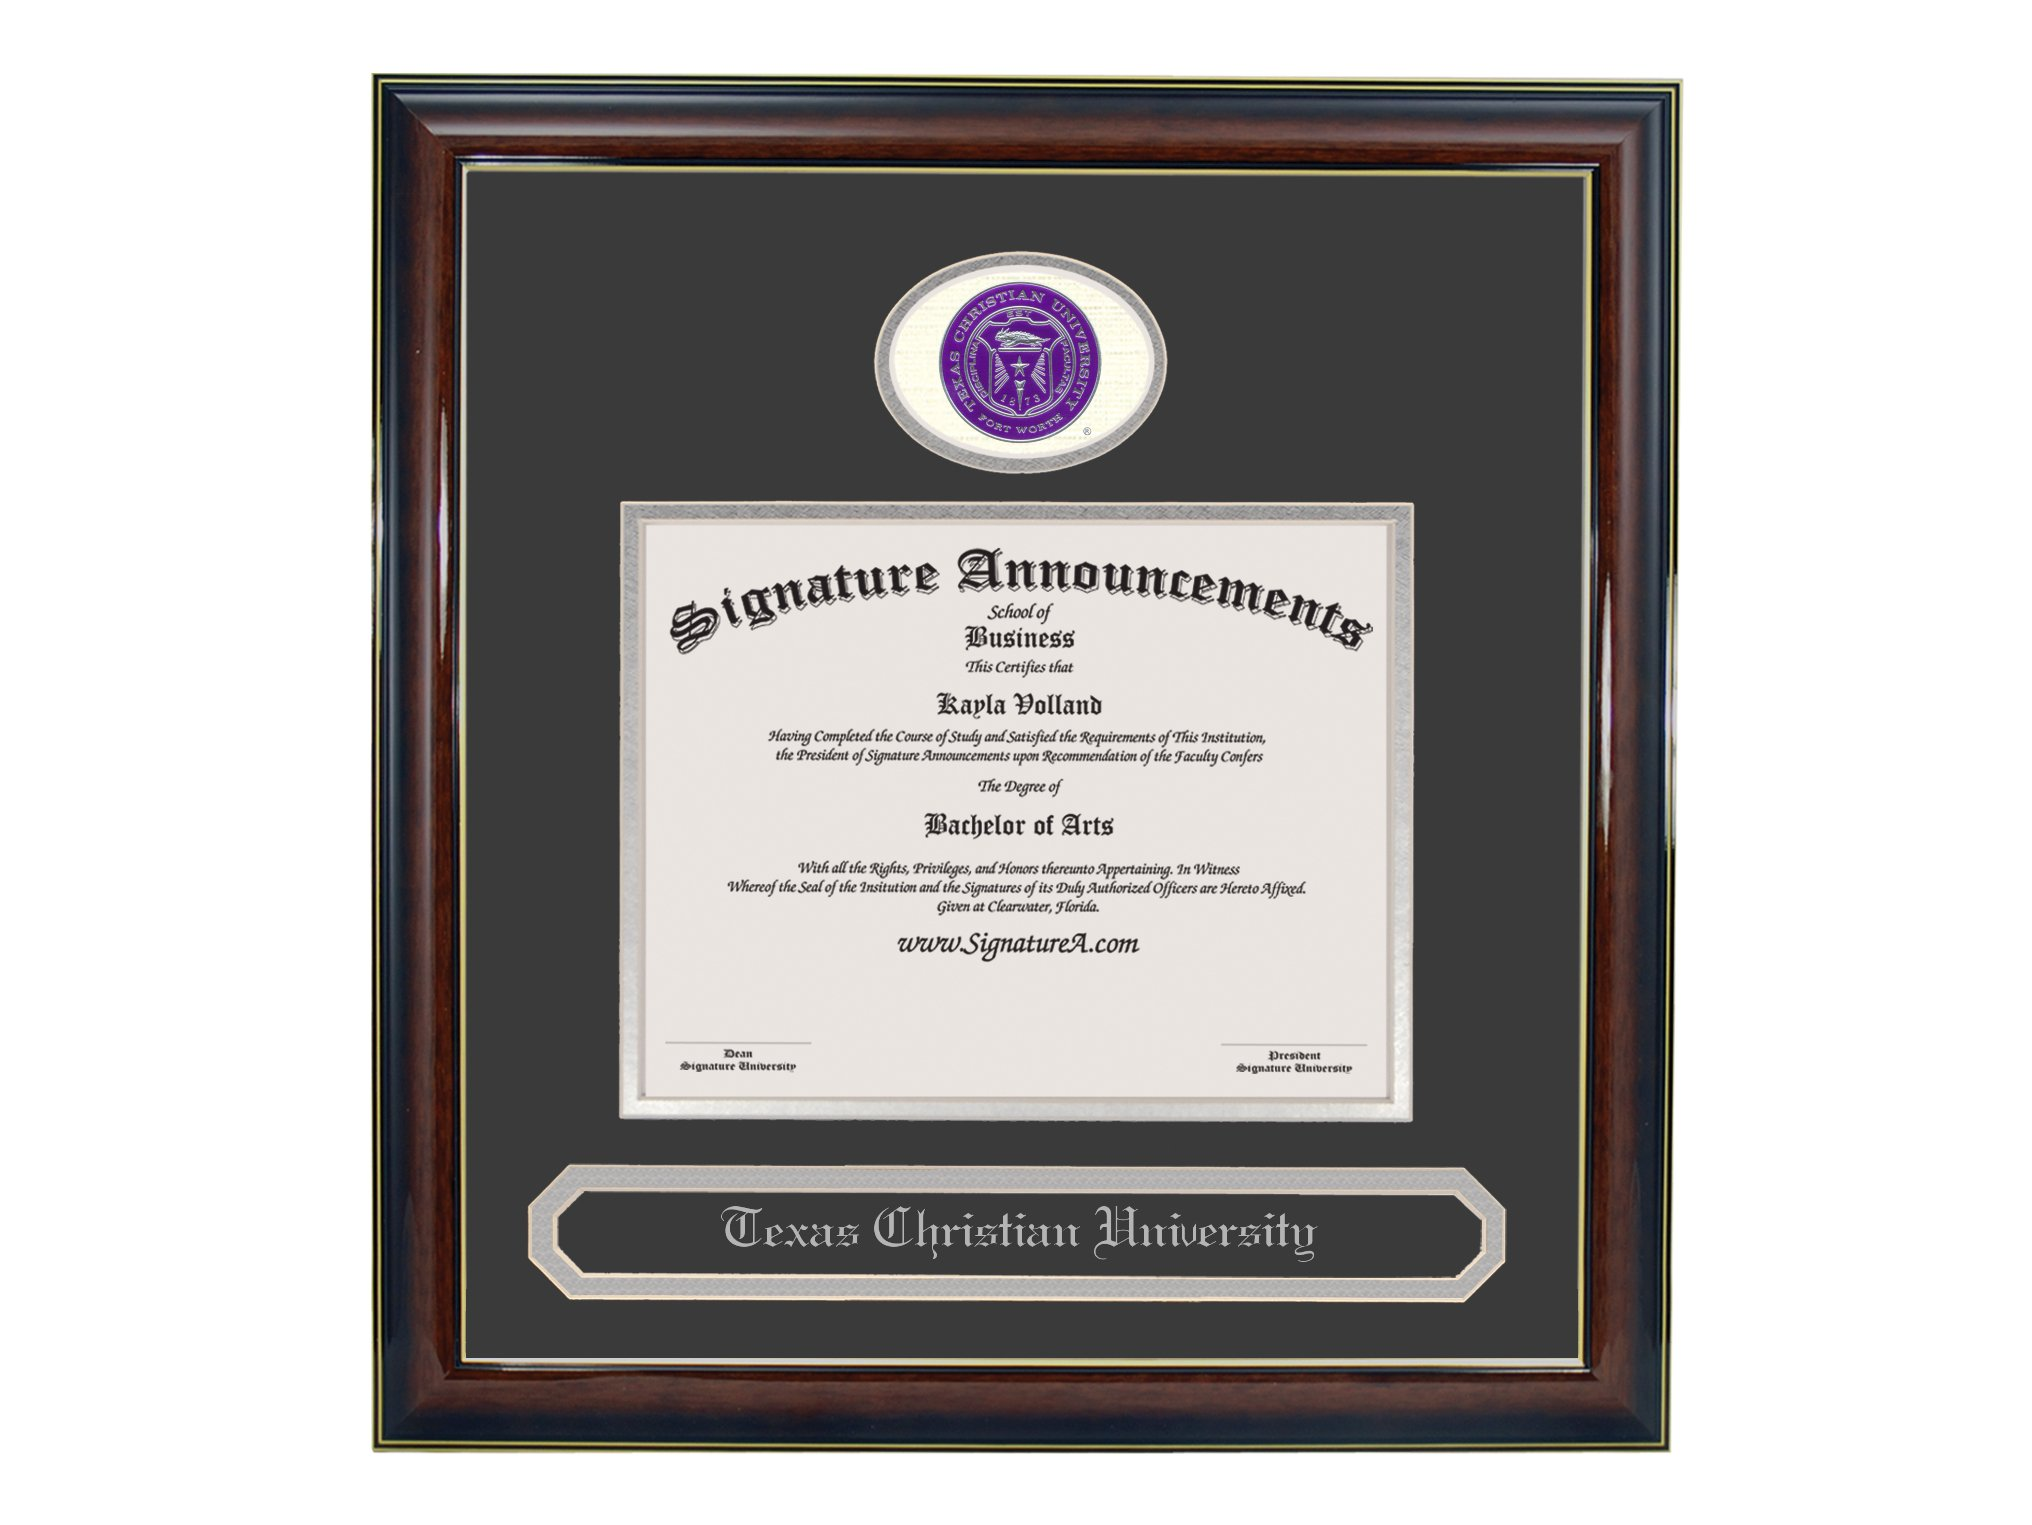 Signature Announcements Texas Christian University (TCU) Undergraduate and Graduate/Professional/Doctor Graduation Diploma Frame with Sculpted Foil Seal & Name (Gloss Mahogany w/Gold Accent, 16 x 16)